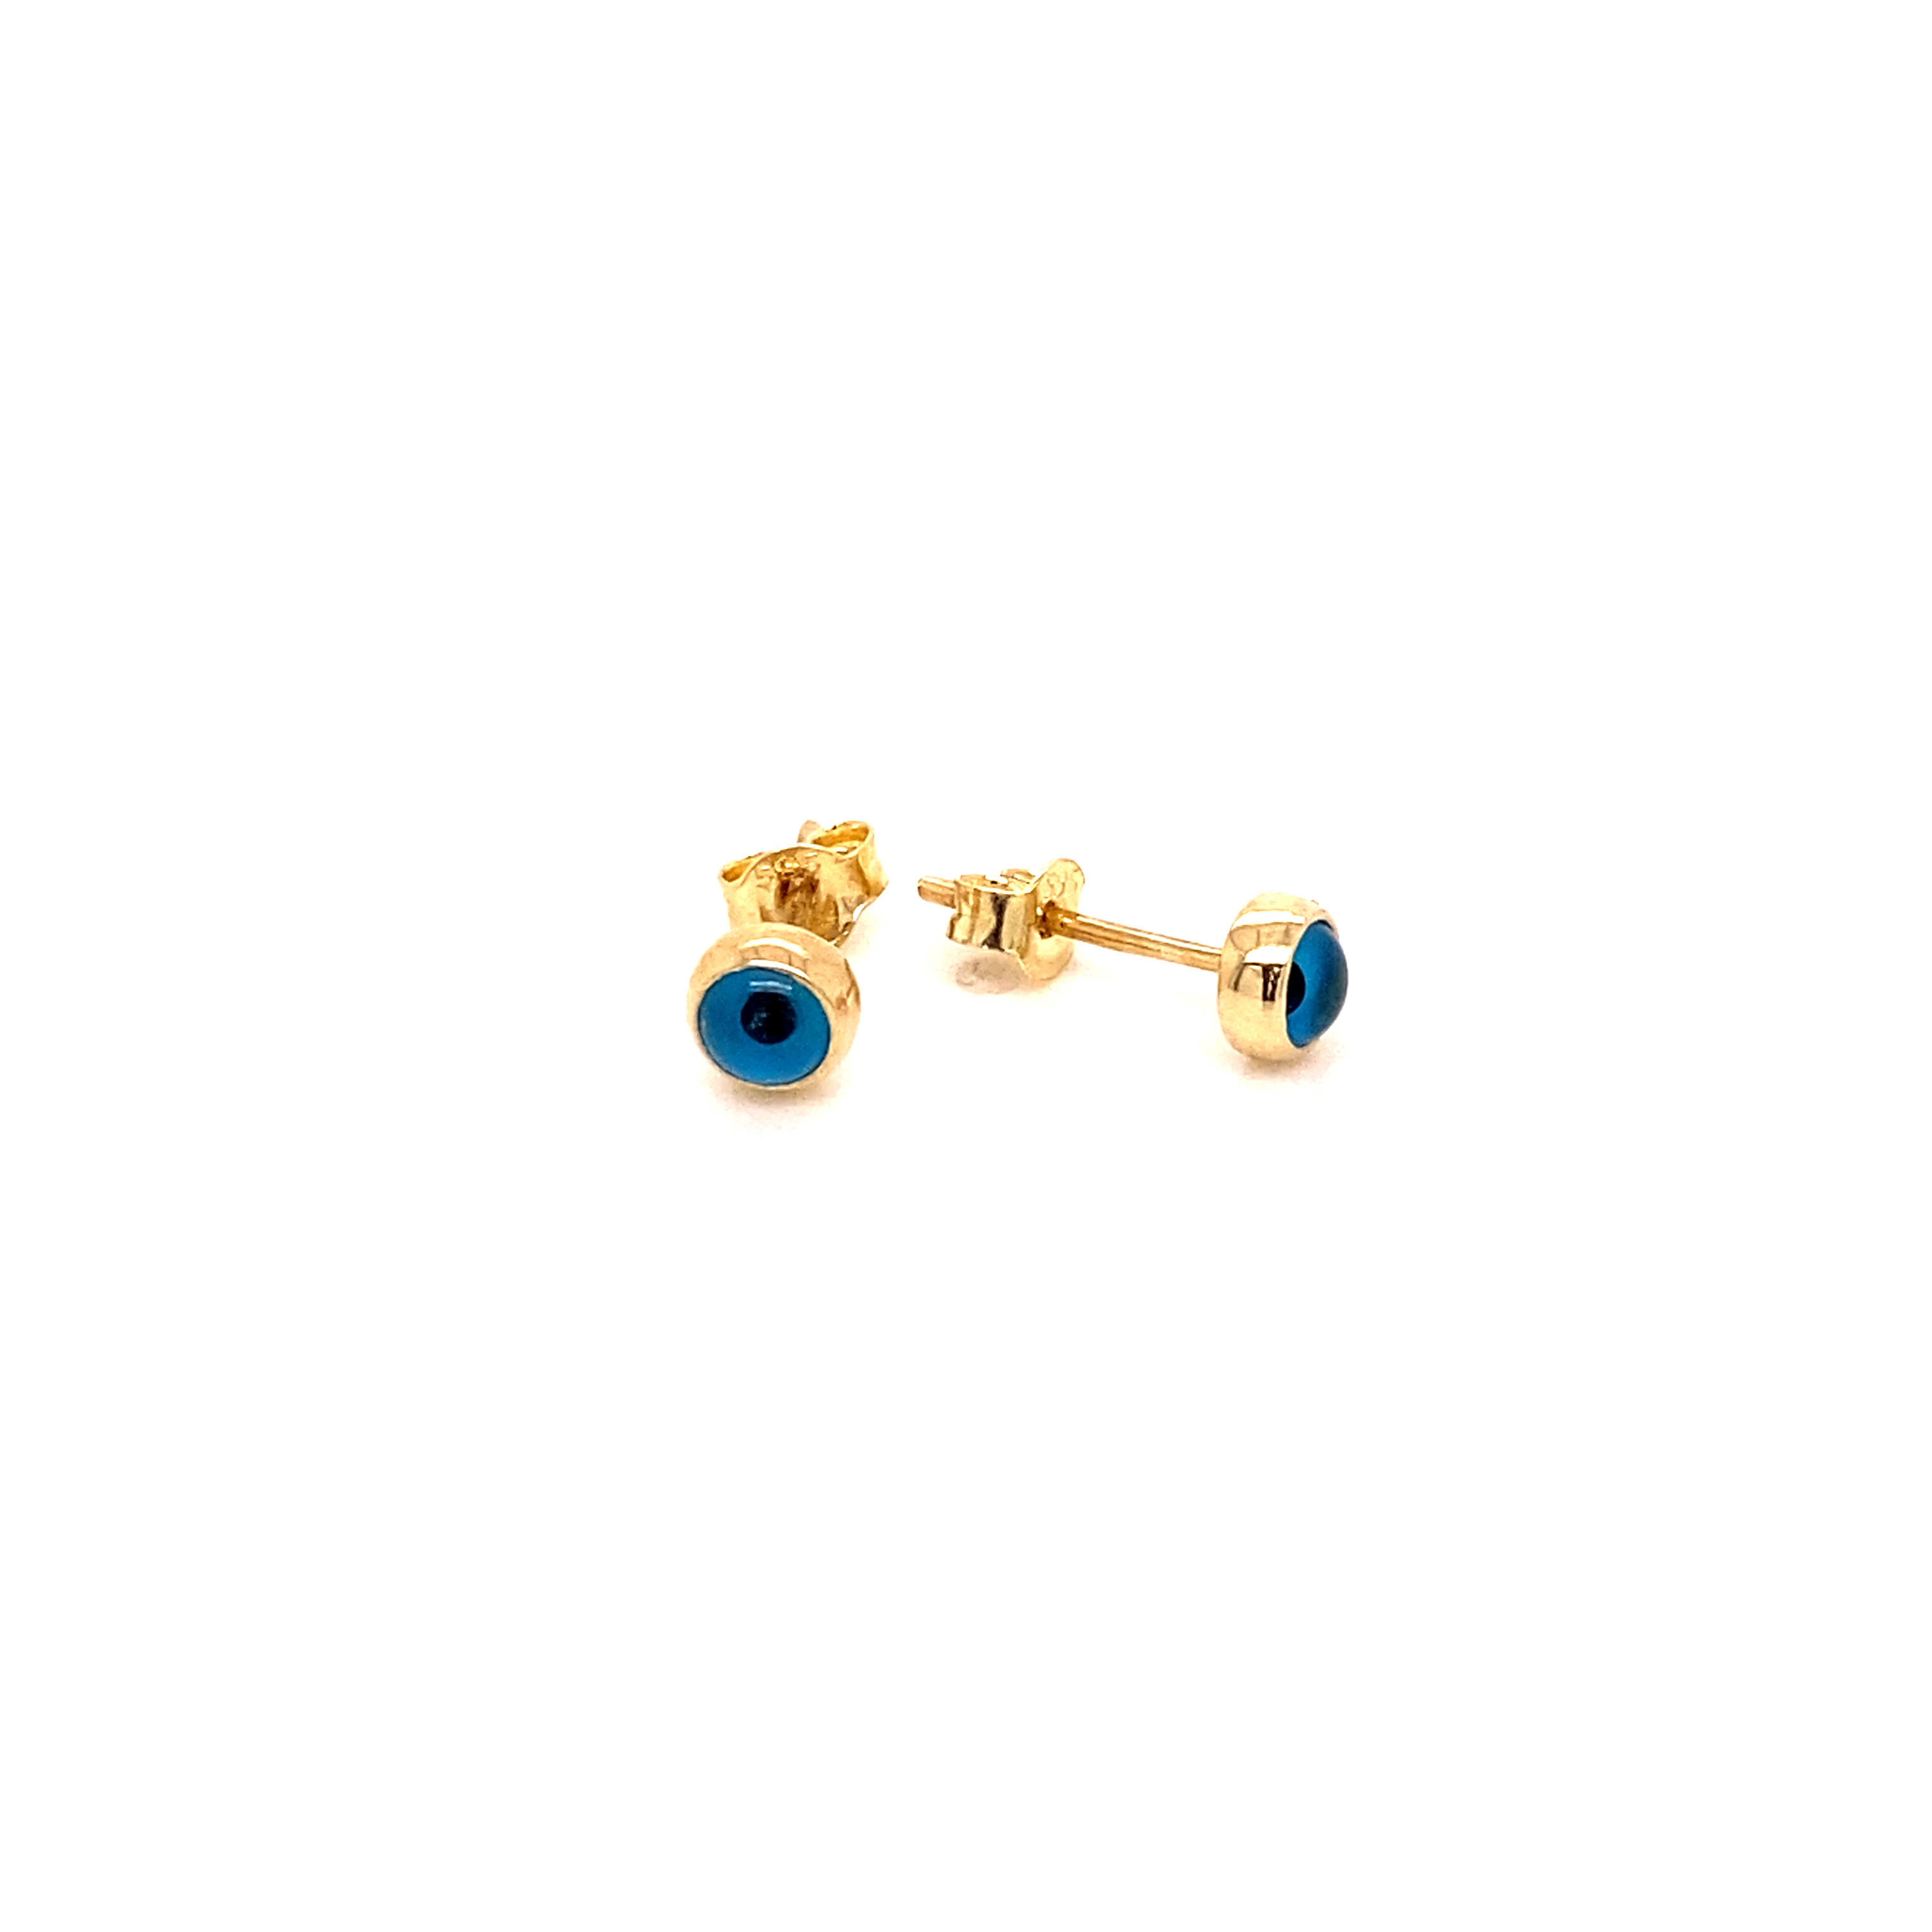 585 Gold Ohrring  | Nazar small